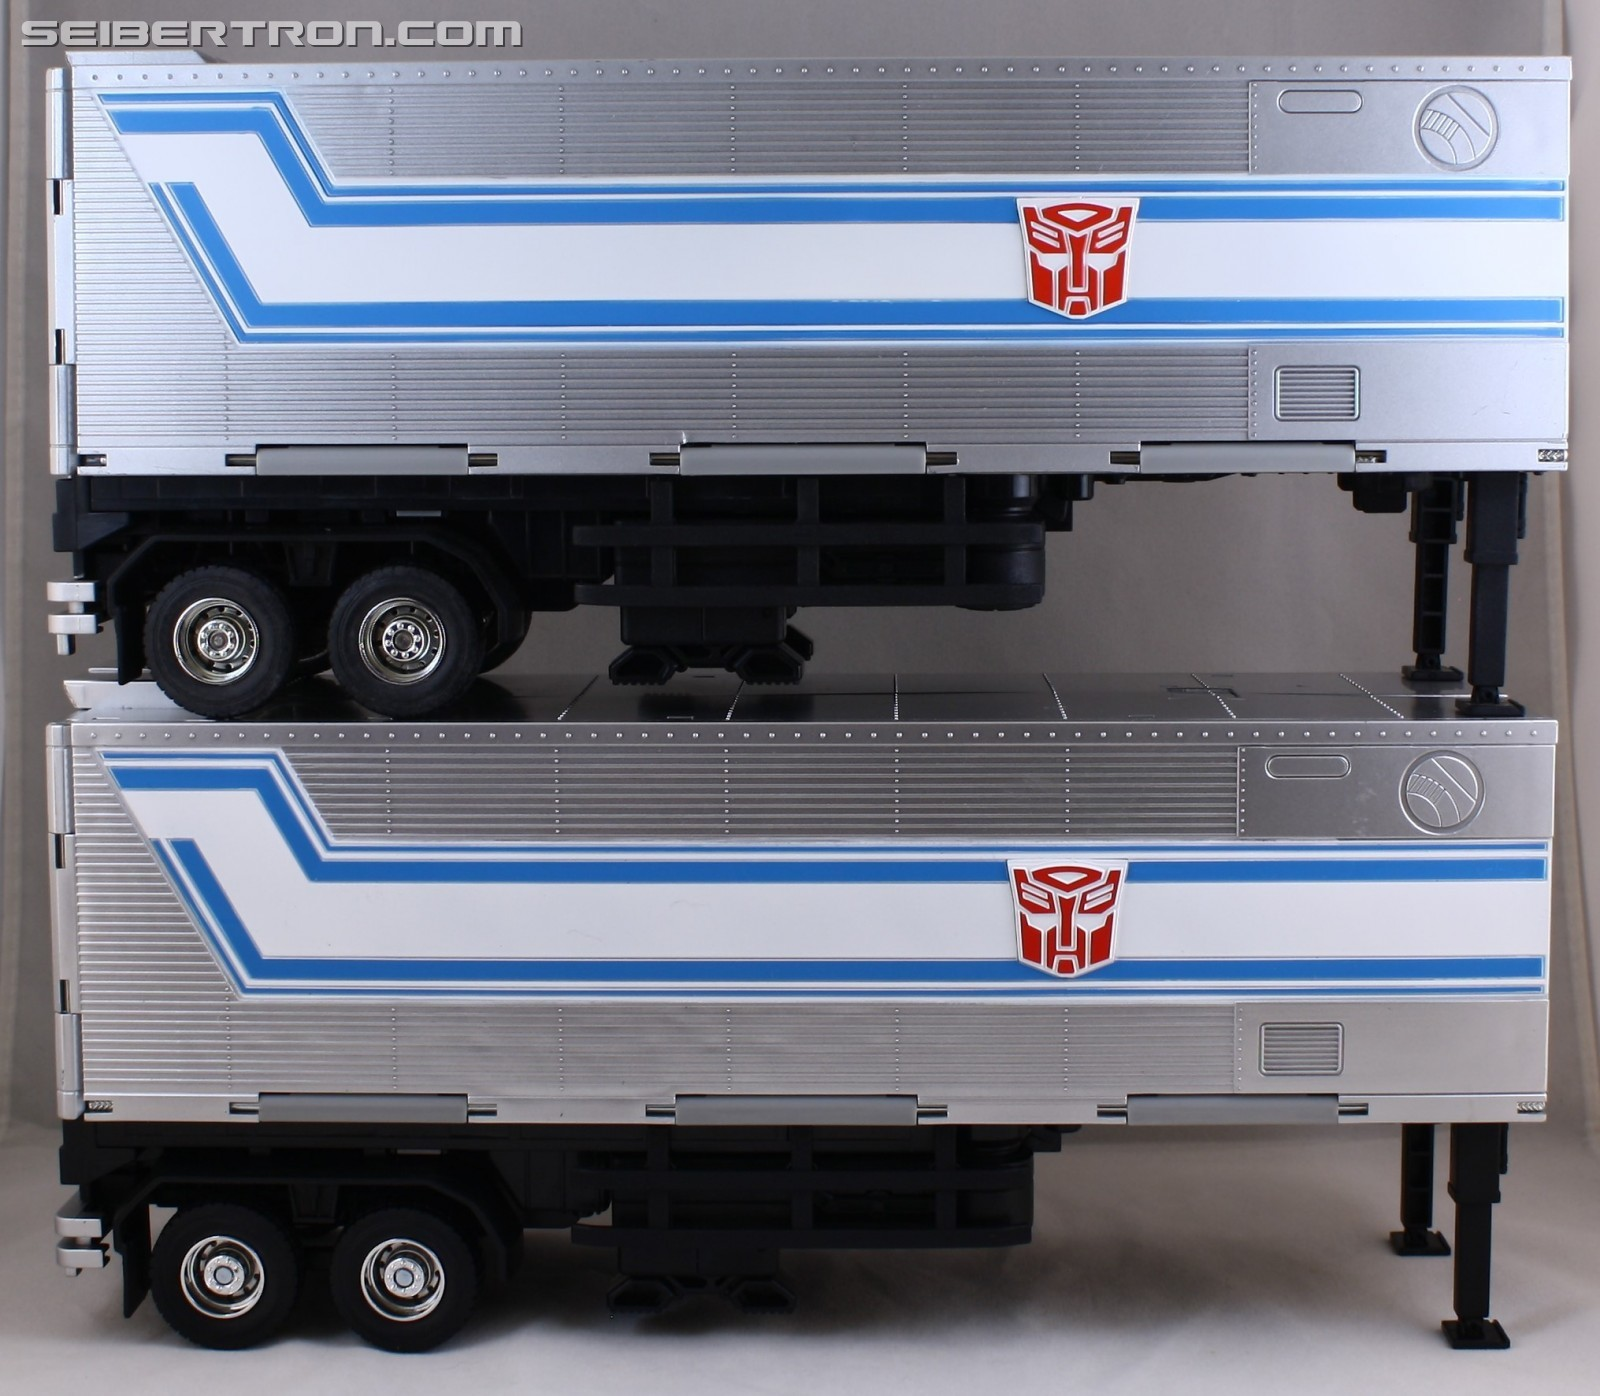 Hasbro Transformers Masterpiece Mp 10 Optimus Prime Images And Convoy News Comparisons To Previous